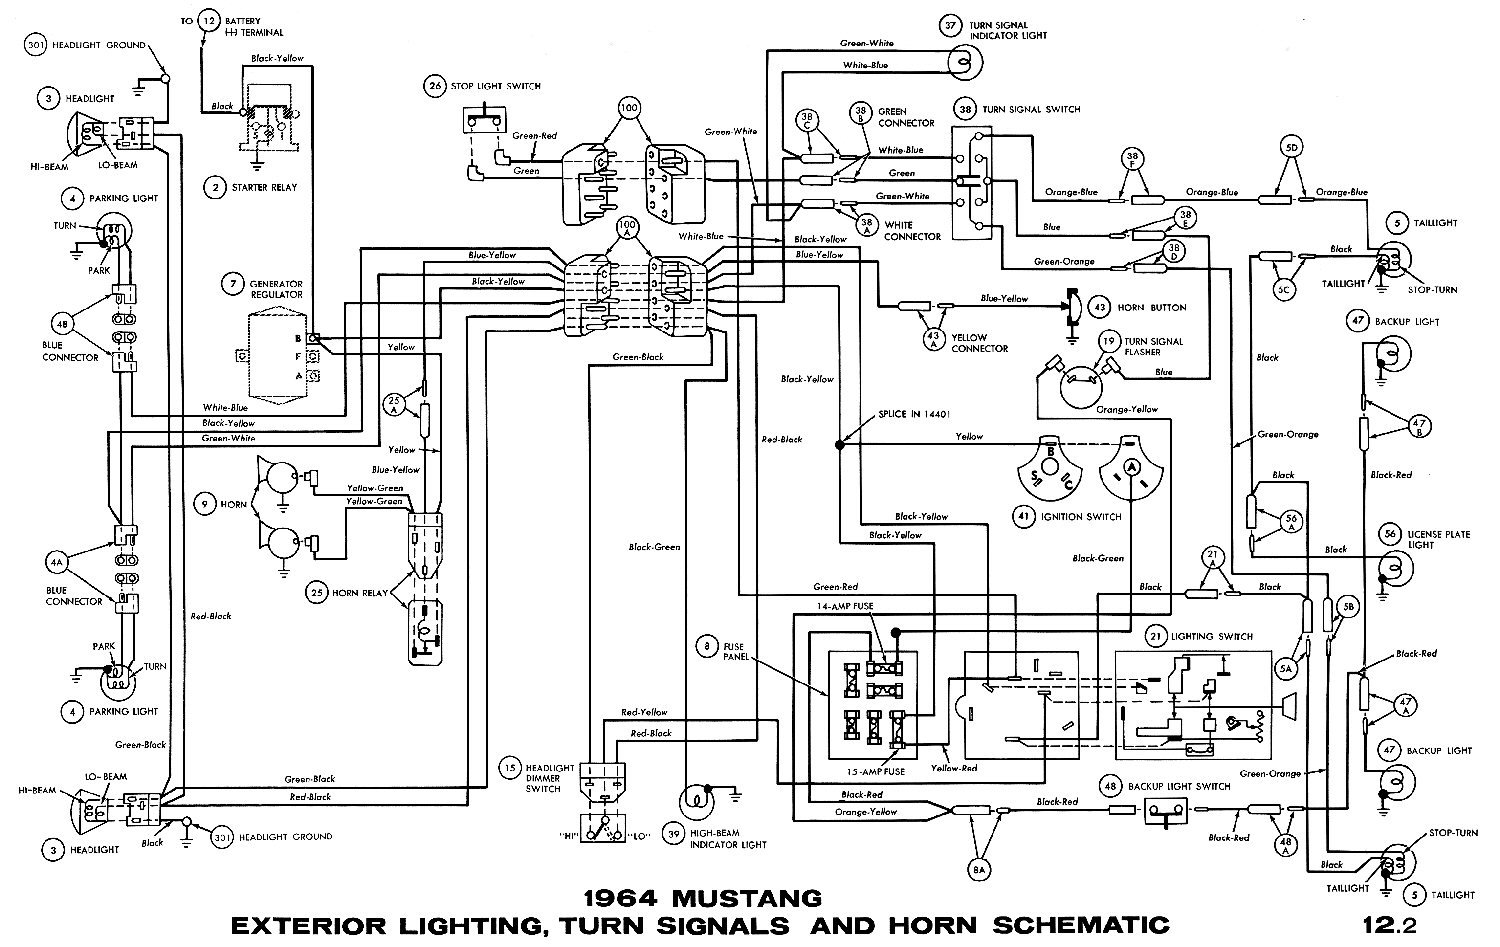 67 mustang wiring diagram exterior  67  free engine image for user manual download 67 Mustang Engine Wiring 67 Mustang Engine Wiring